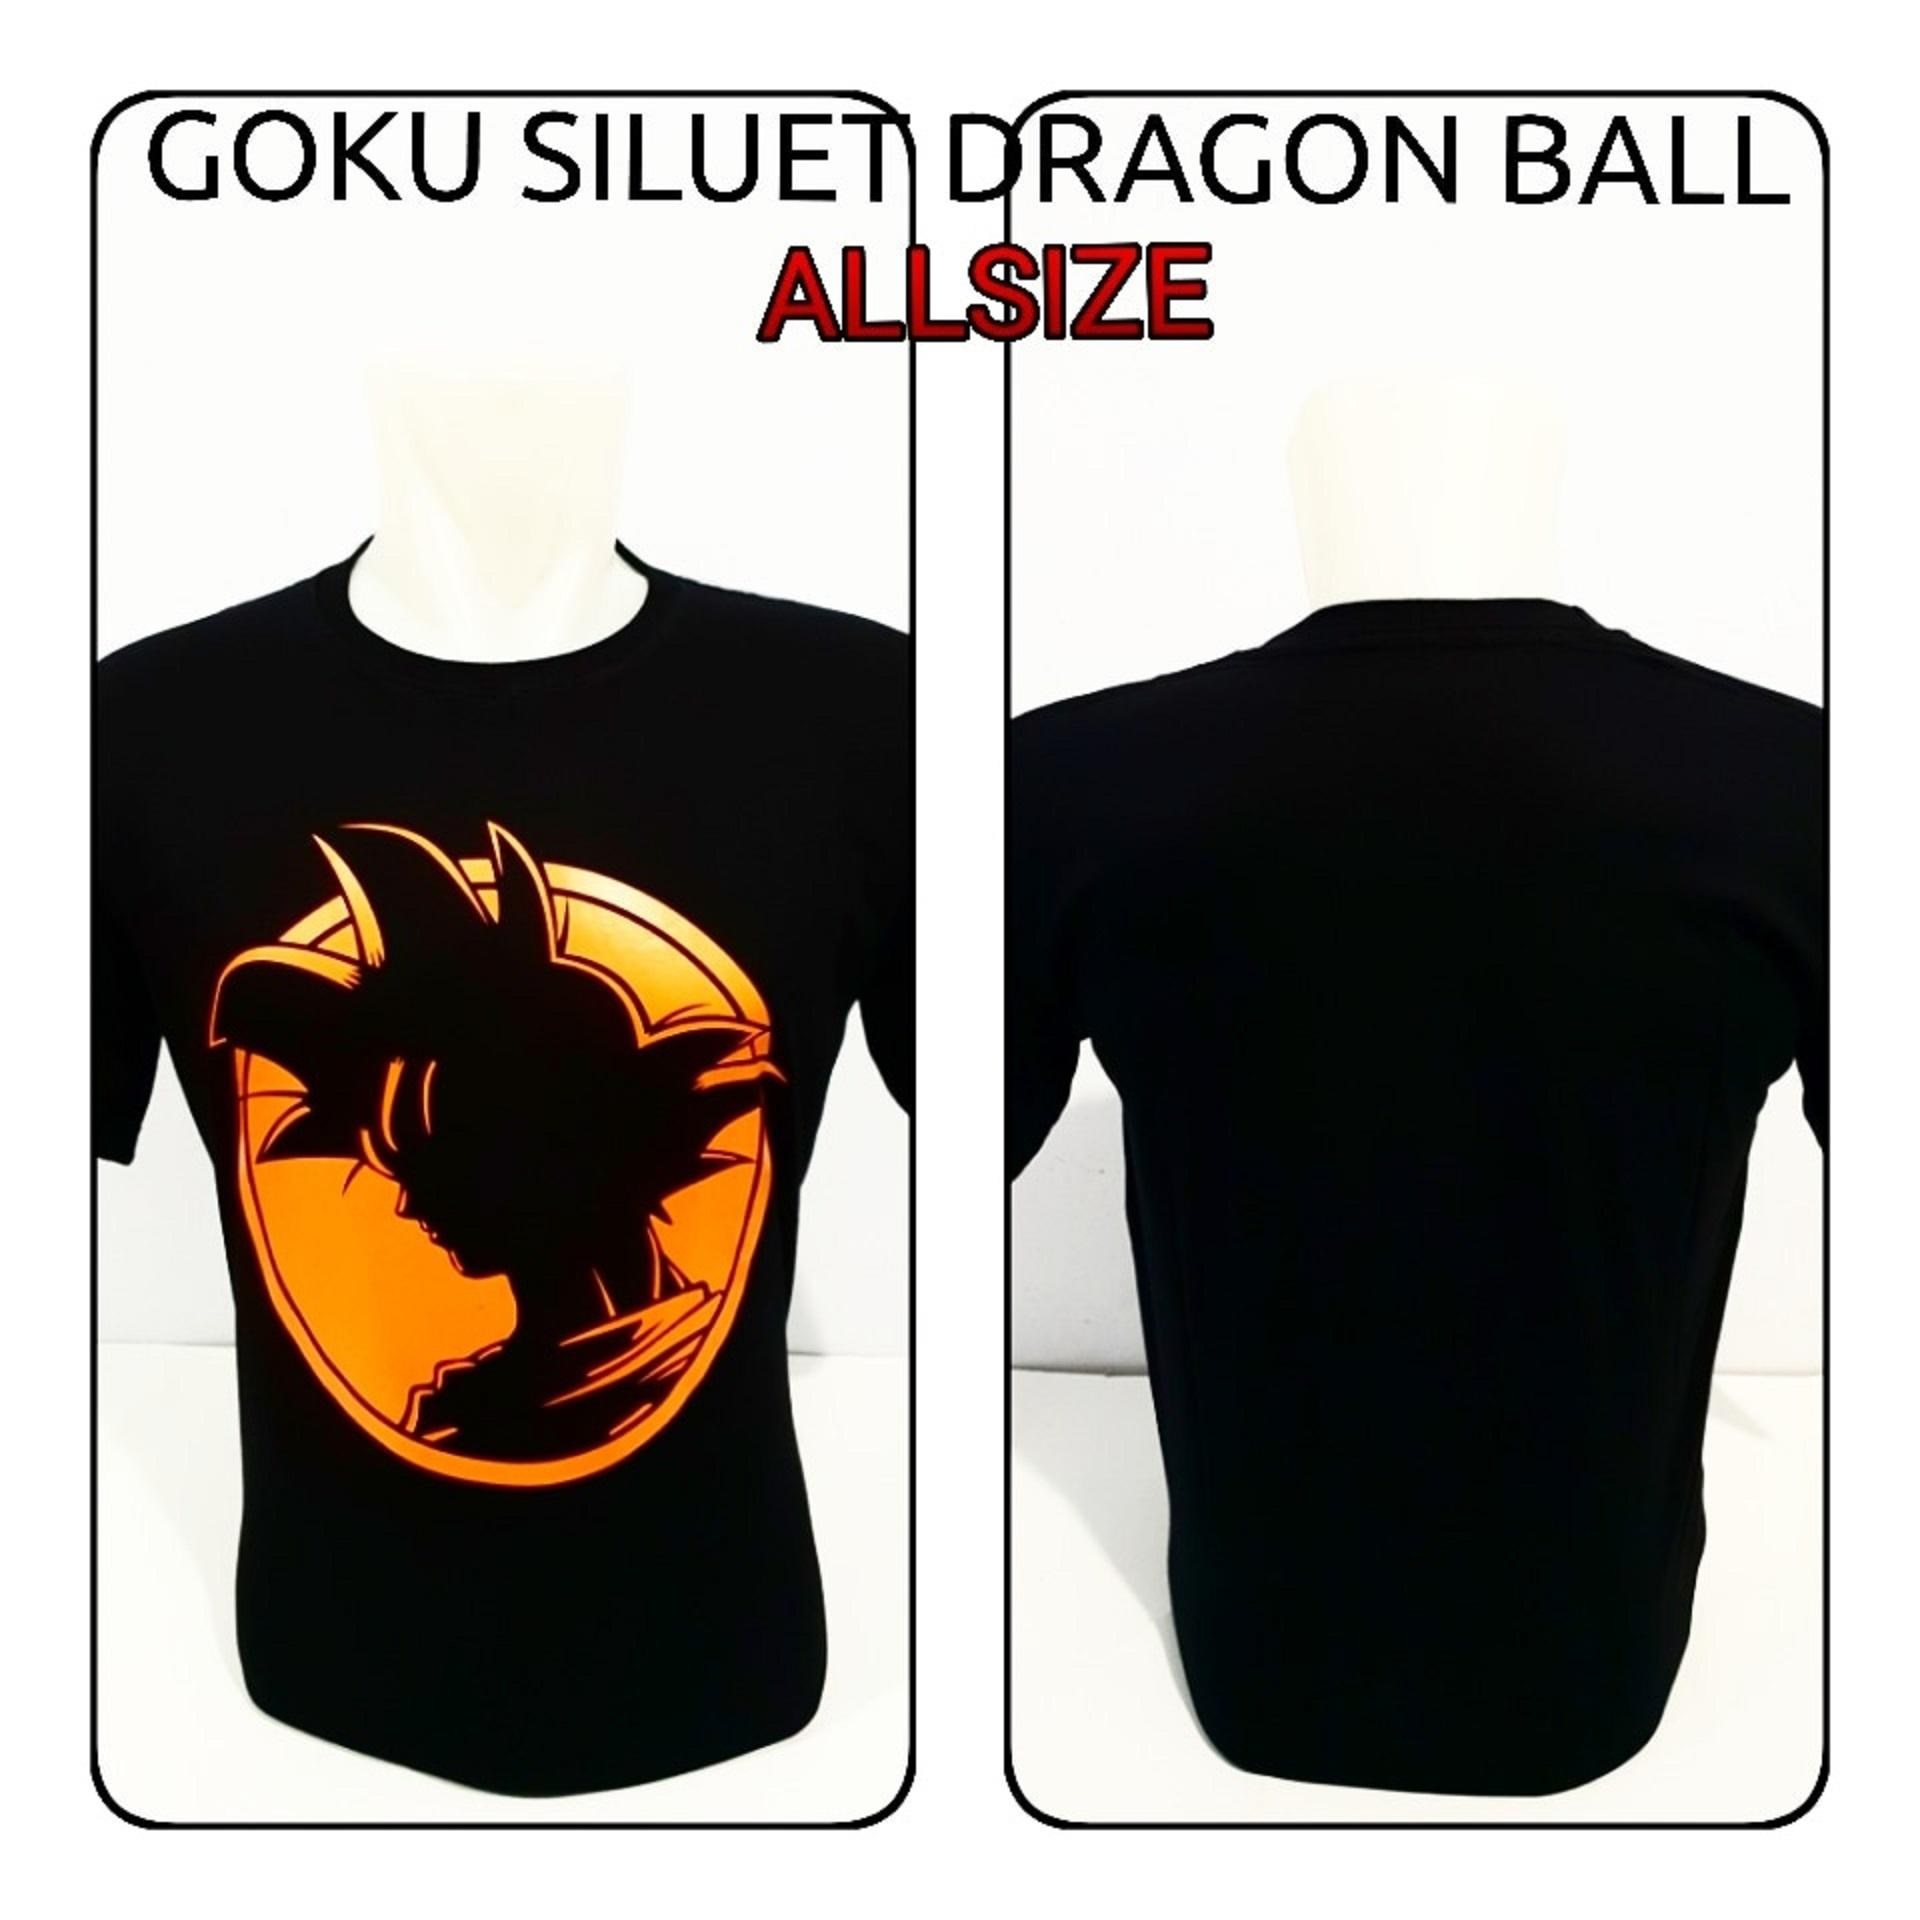 Hendfaris Distro Center - T-Shirt Distro - Kaos Pria/Wanita - Goku Siluet